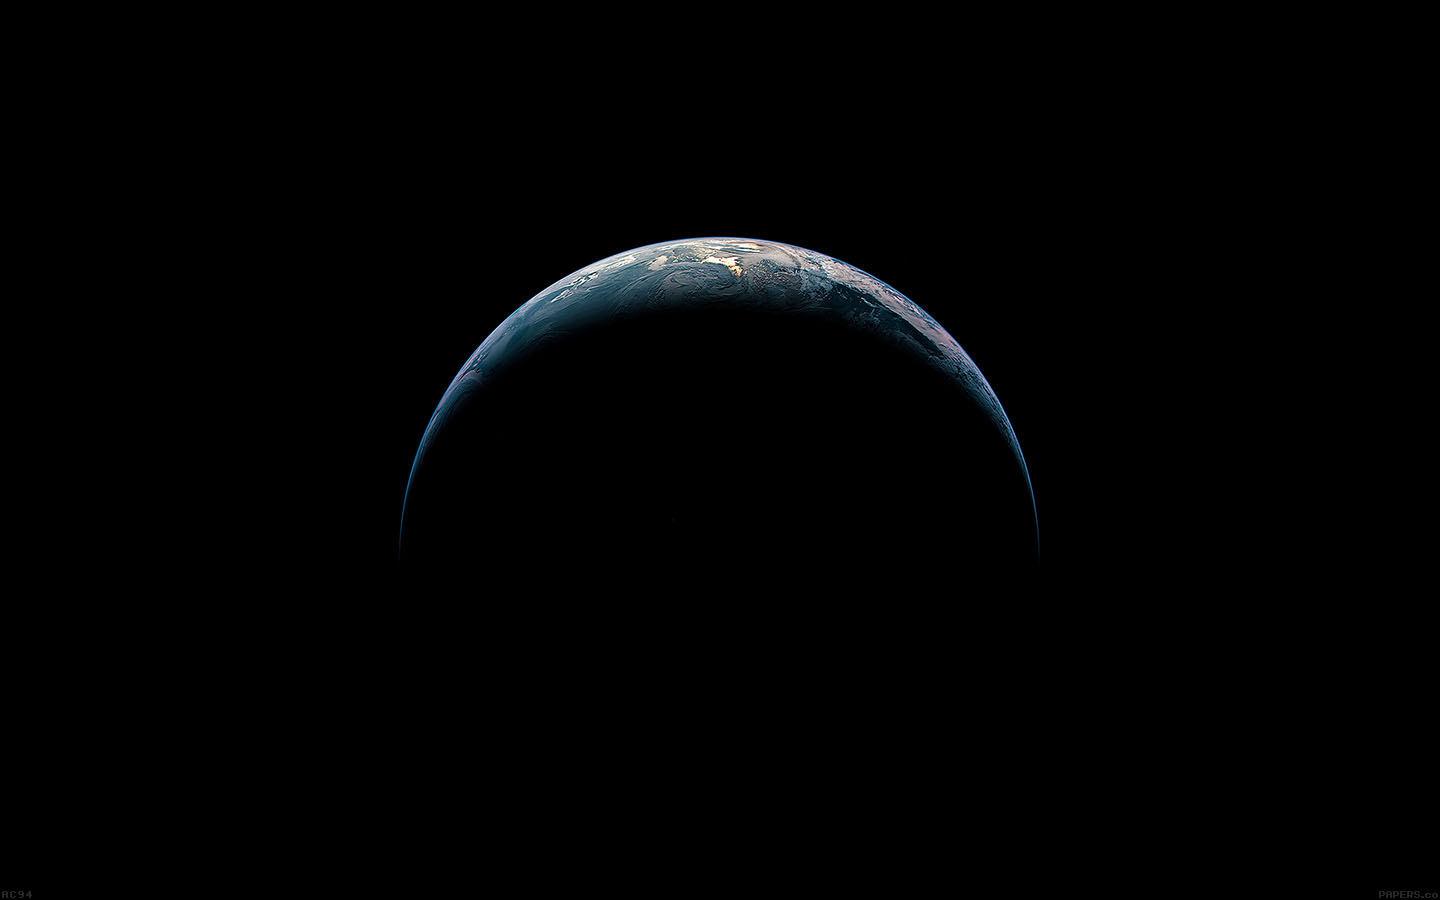 Ac94 Wallpaper Ios8 Apple Iphone6 Plus Earth From Sky Wallpaper